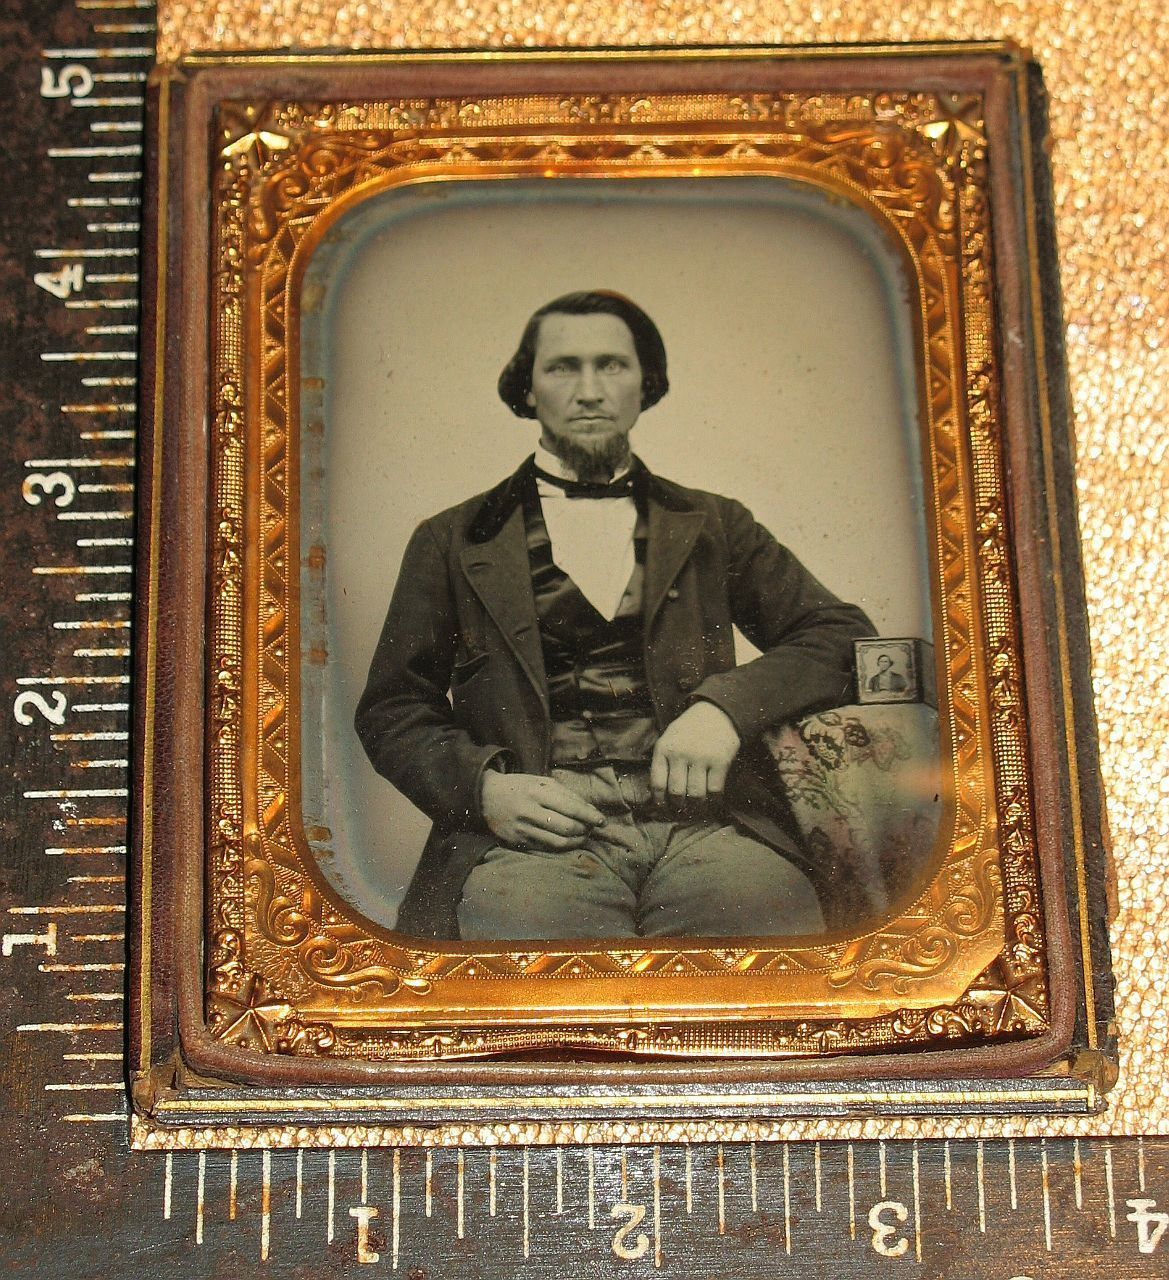 RARE Crisp 1 4 Ambrotype Man with A Photo of Himself on Table Silhouette Backing…